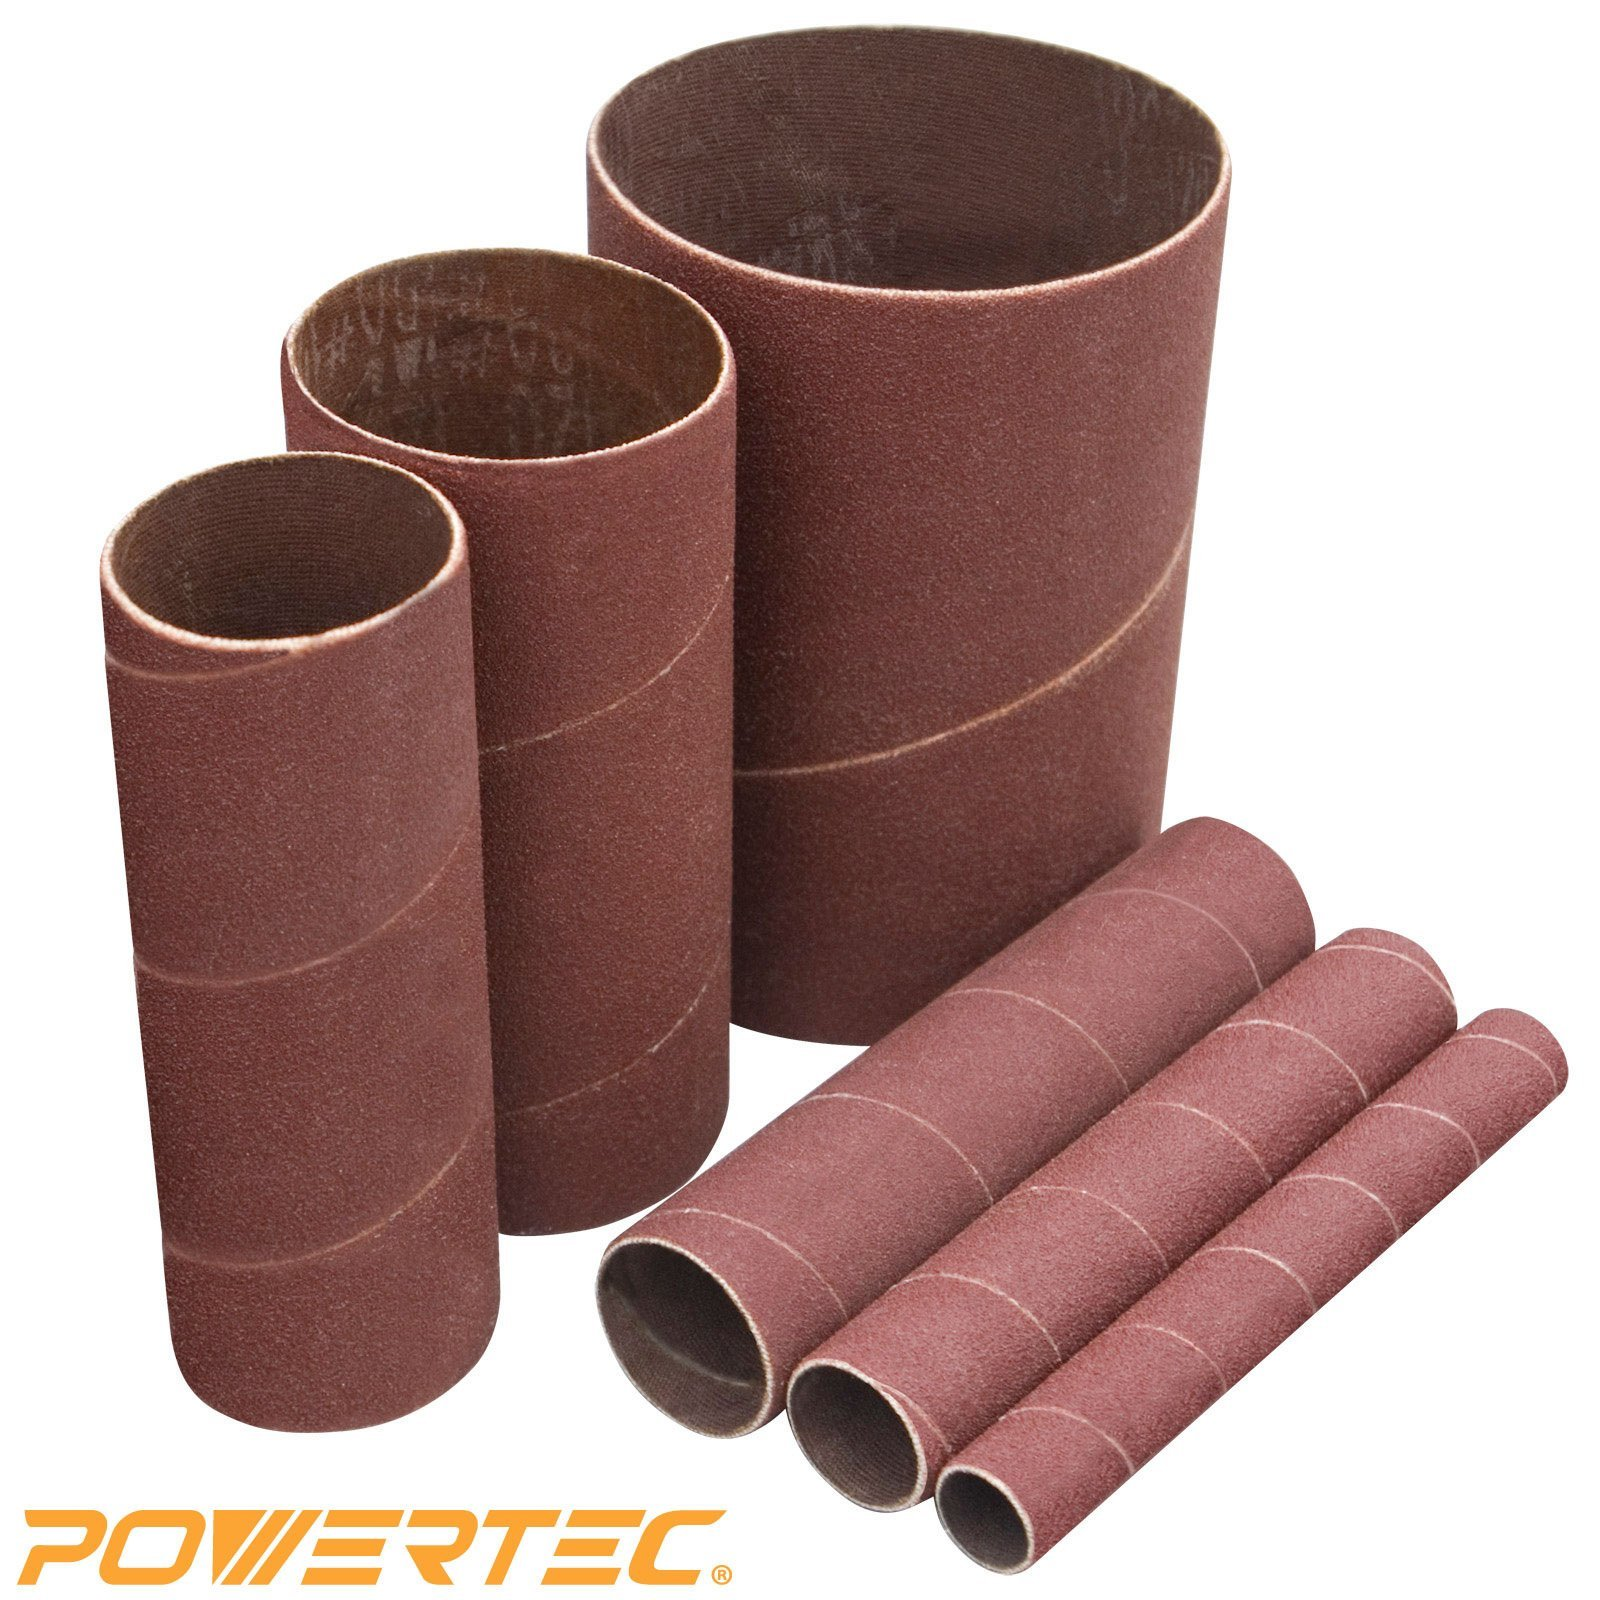 "POWERTEC 11208 Sanding Sleeves, 4-1/2-Inch, 240 Grit, 1/2"", 3/4"", 1"", 1-1/2"", 2"" and 3"", 6PK"